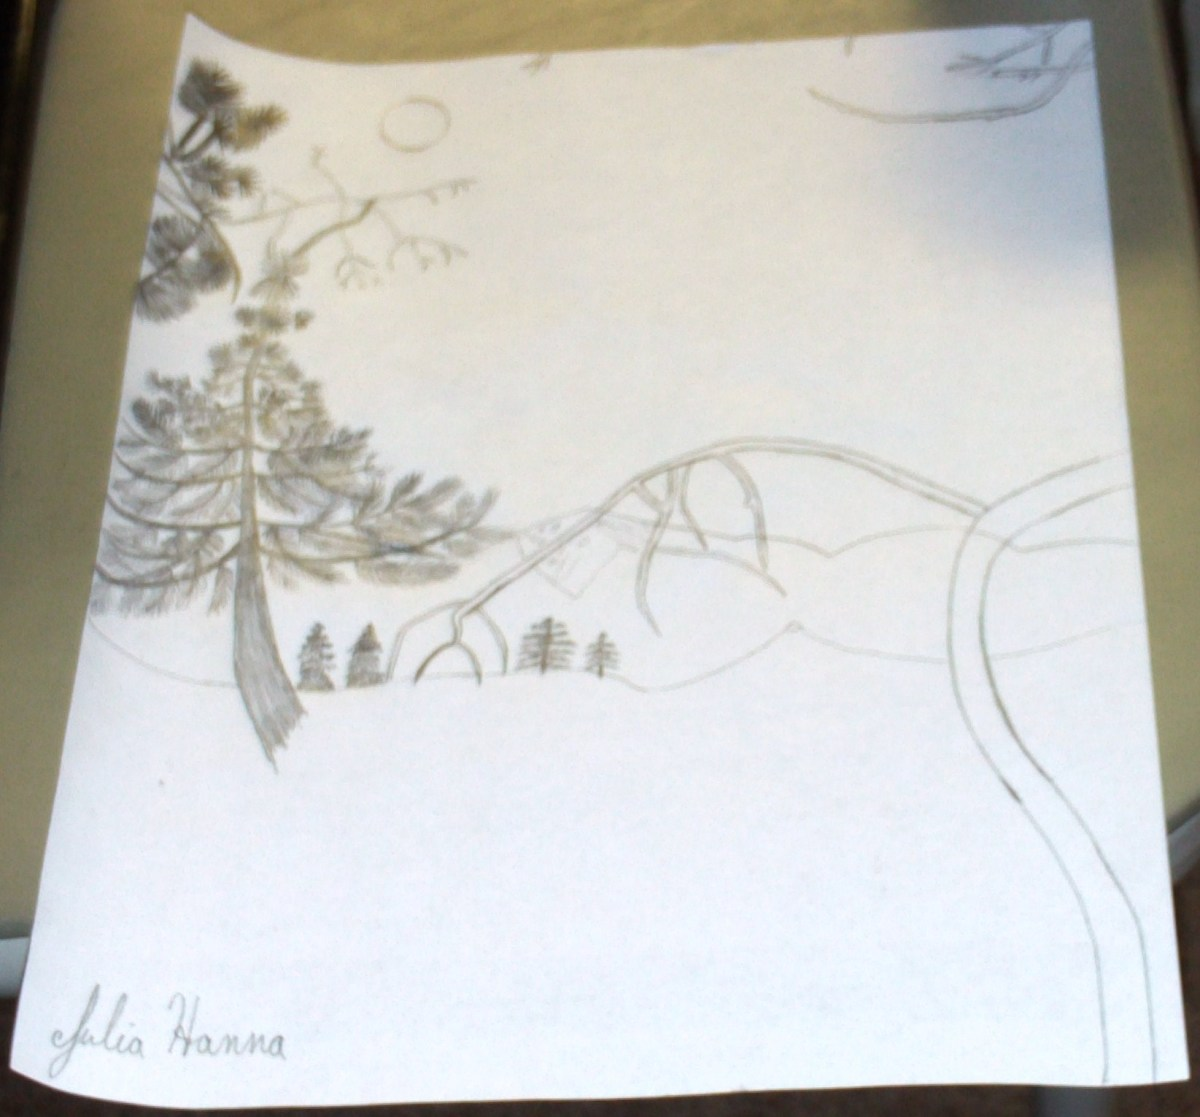 Here I am adding more details to the drawing of my tree.